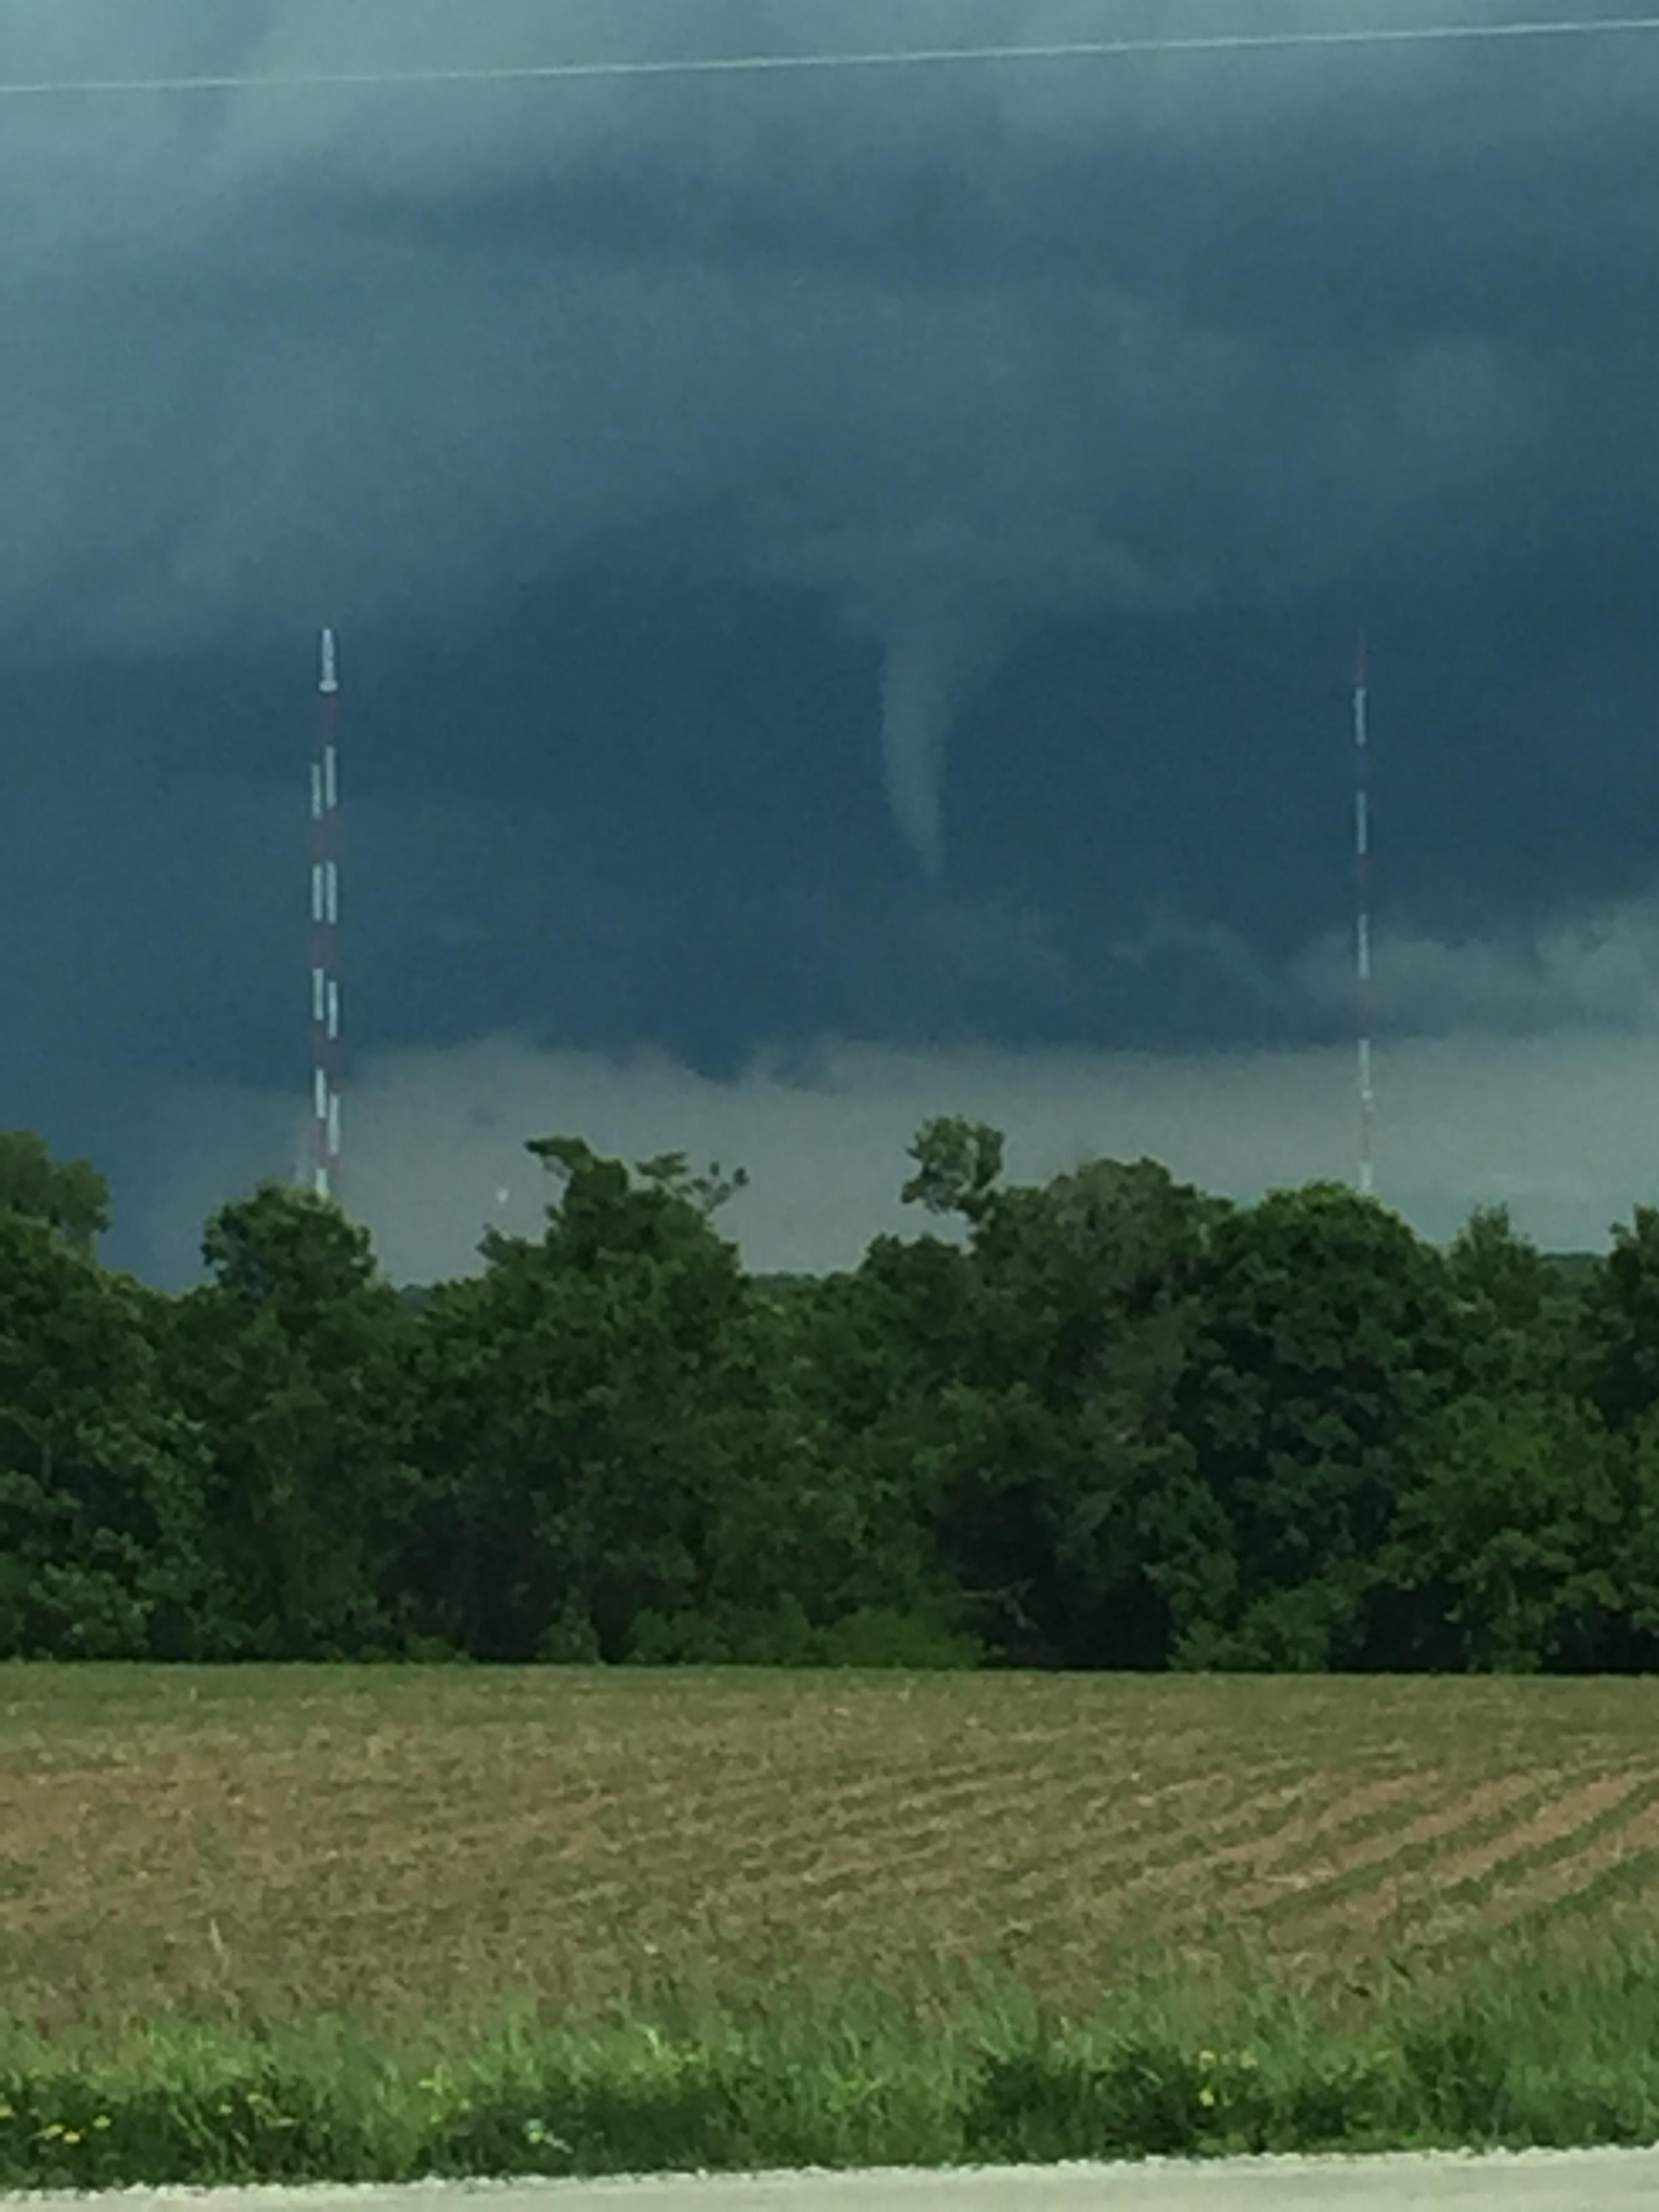 Funnel cloud seen over Ledgeview Saturday afternoon. (PHOTO: Todd Berry/WLUK)